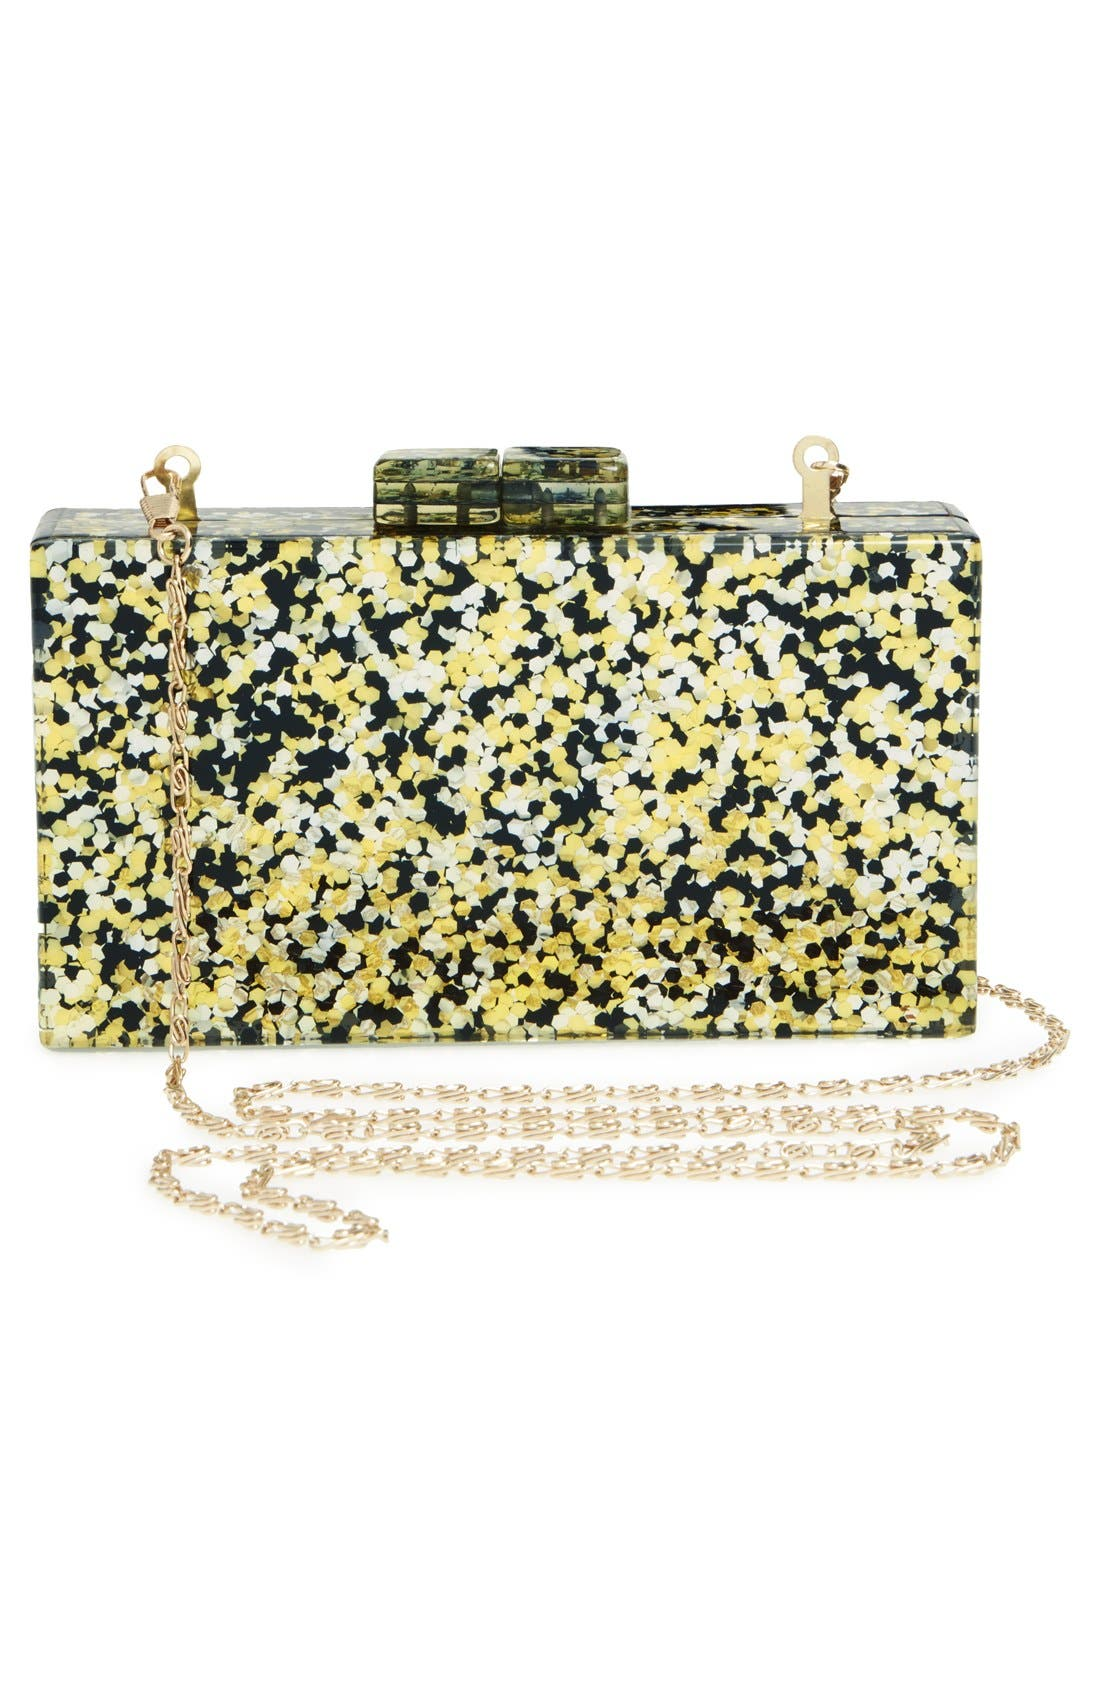 Couture Box Clutch,                             Alternate thumbnail 3, color,                             Black/ Gold